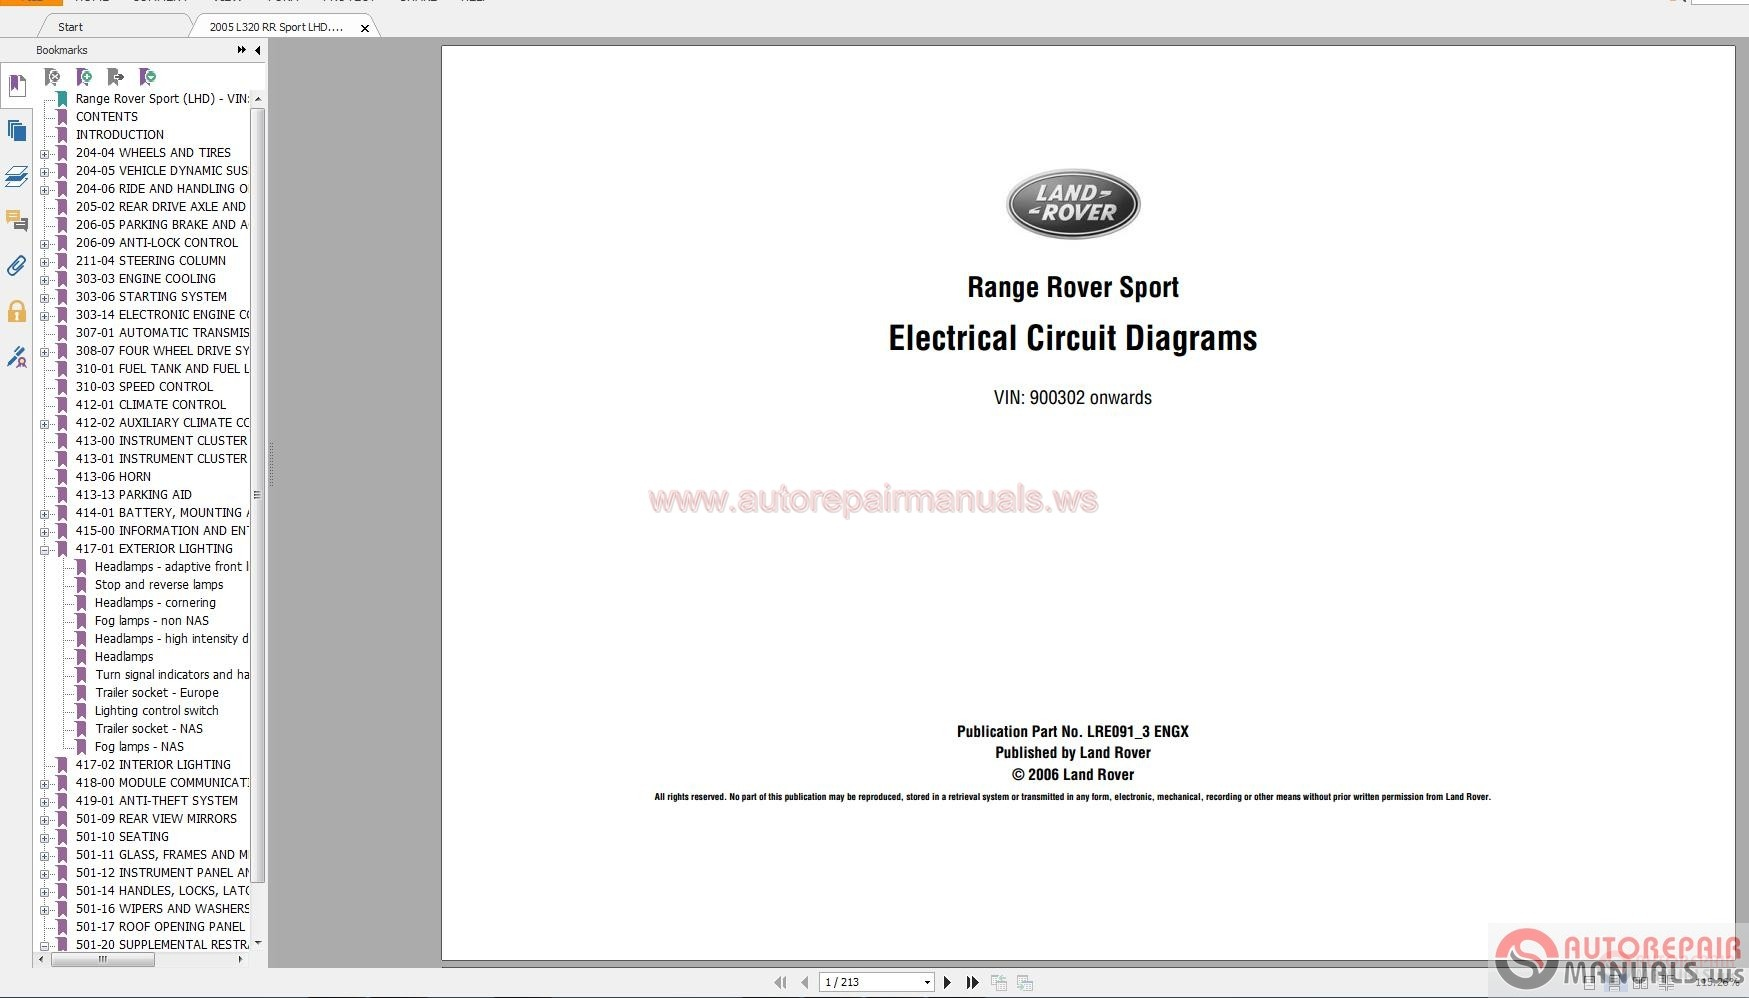 Land_Rover_ _Range_Rover_Electrical_Wiring_Diagram_Guides_1995 201514 land rover range rover electrical wiring diagram guides 1995  at creativeand.co